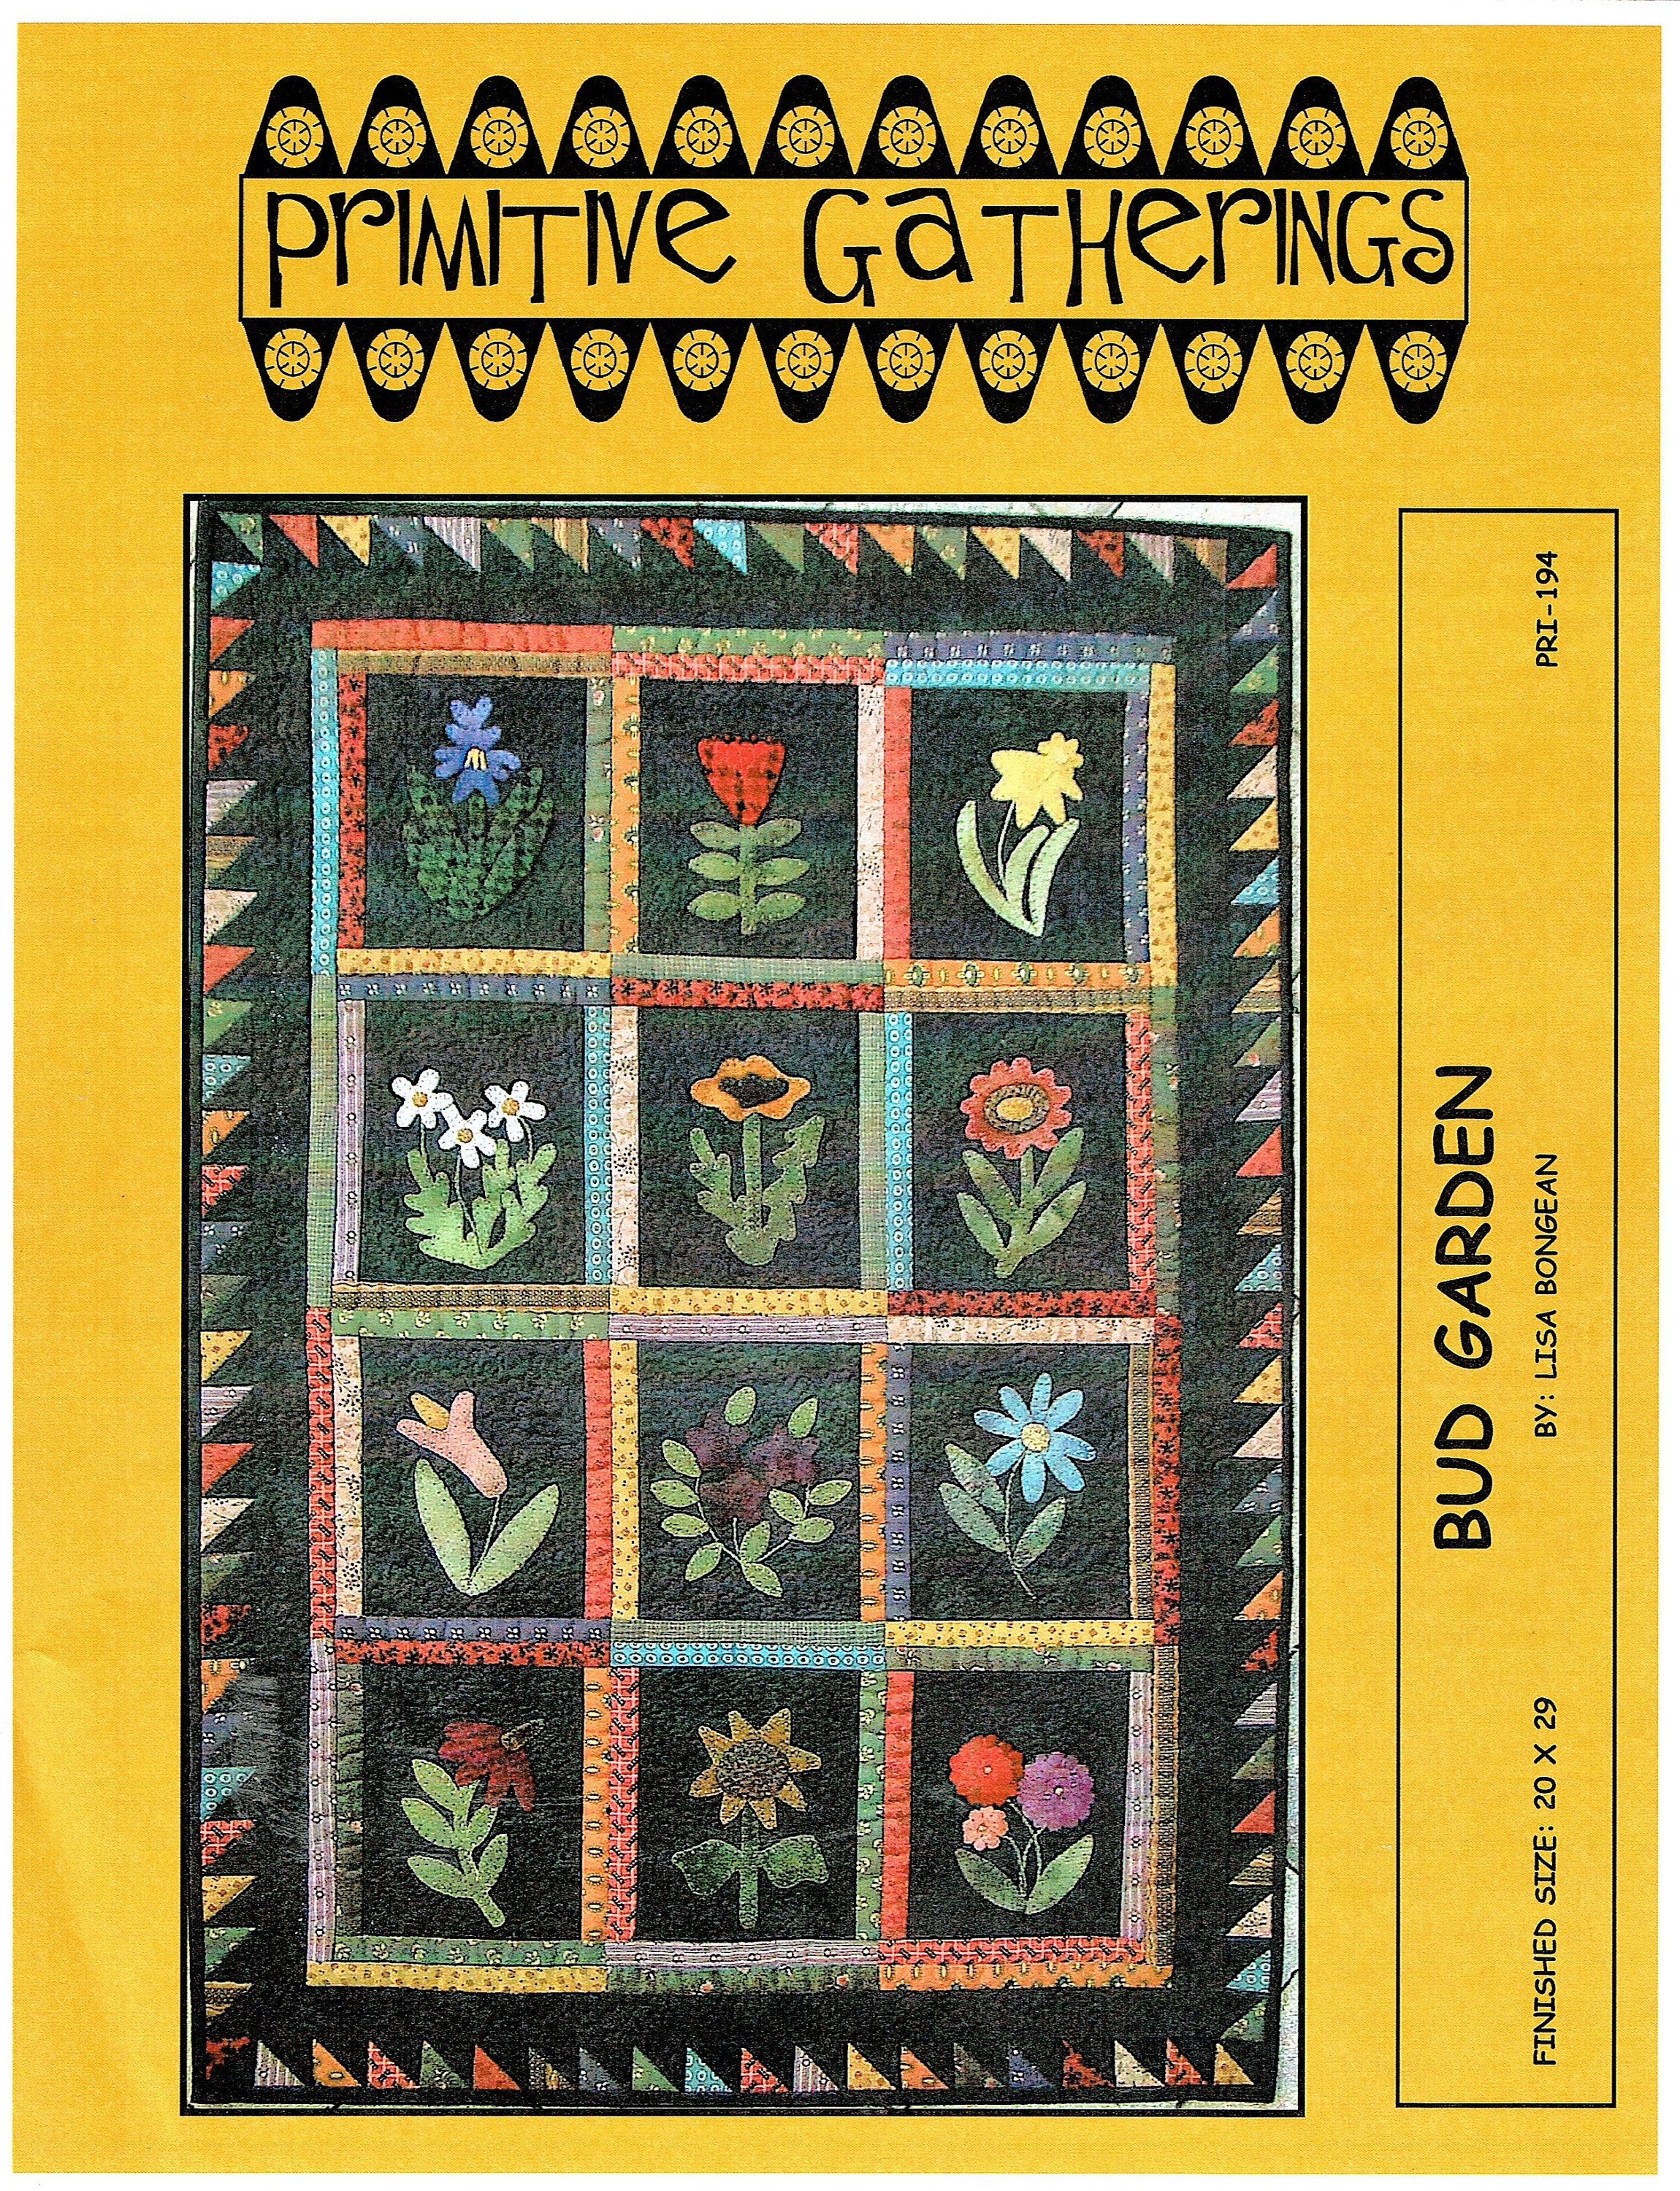 Bud Garden quilting and applique pattern from Primitive